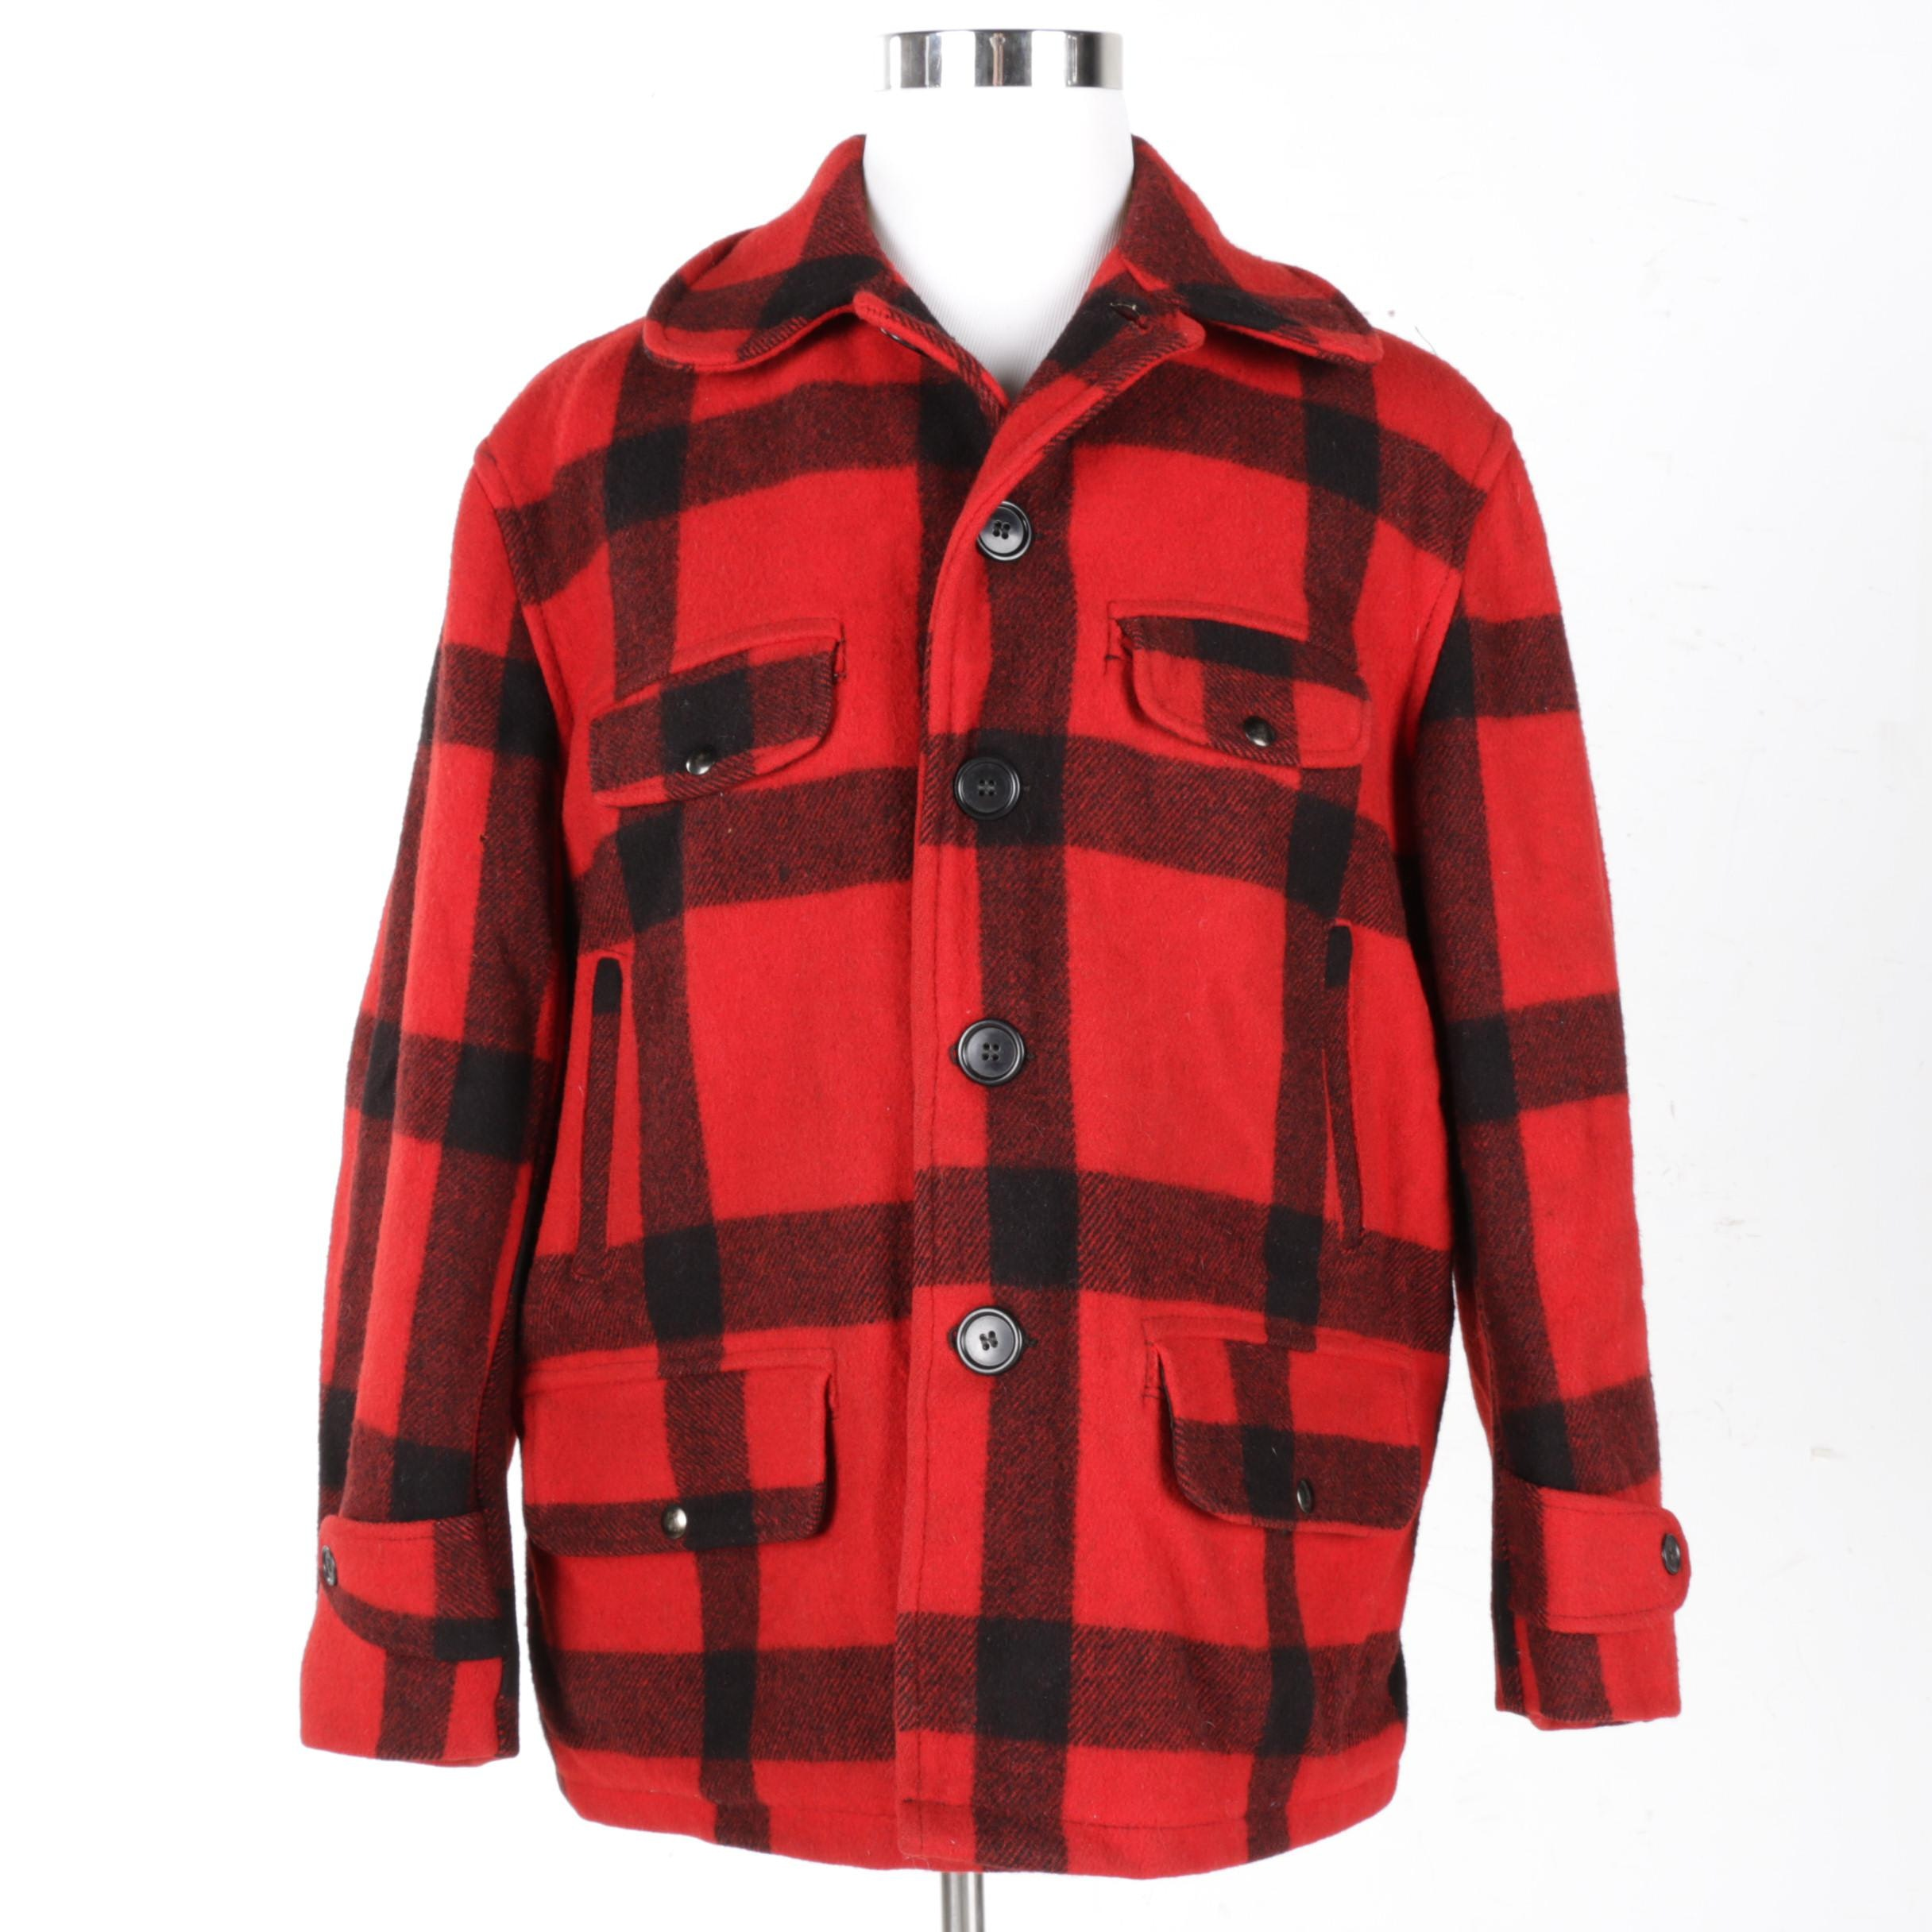 Men's Carter's Plaid Wool Coat